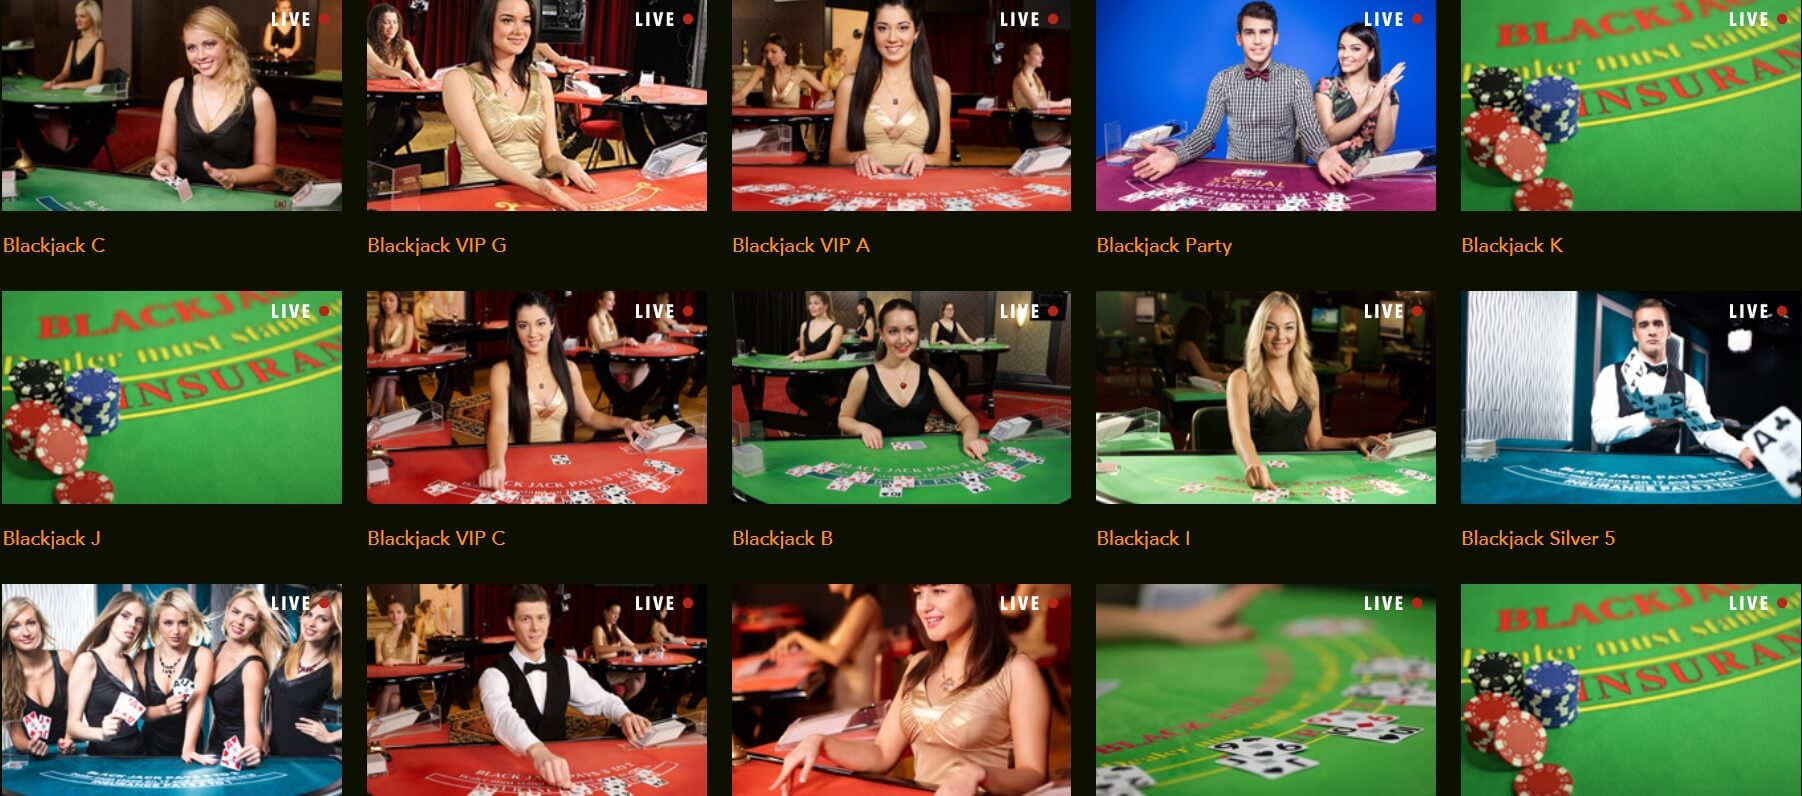 Casino uk online guide blackjack which las vegas casinos have caribbean stud poker